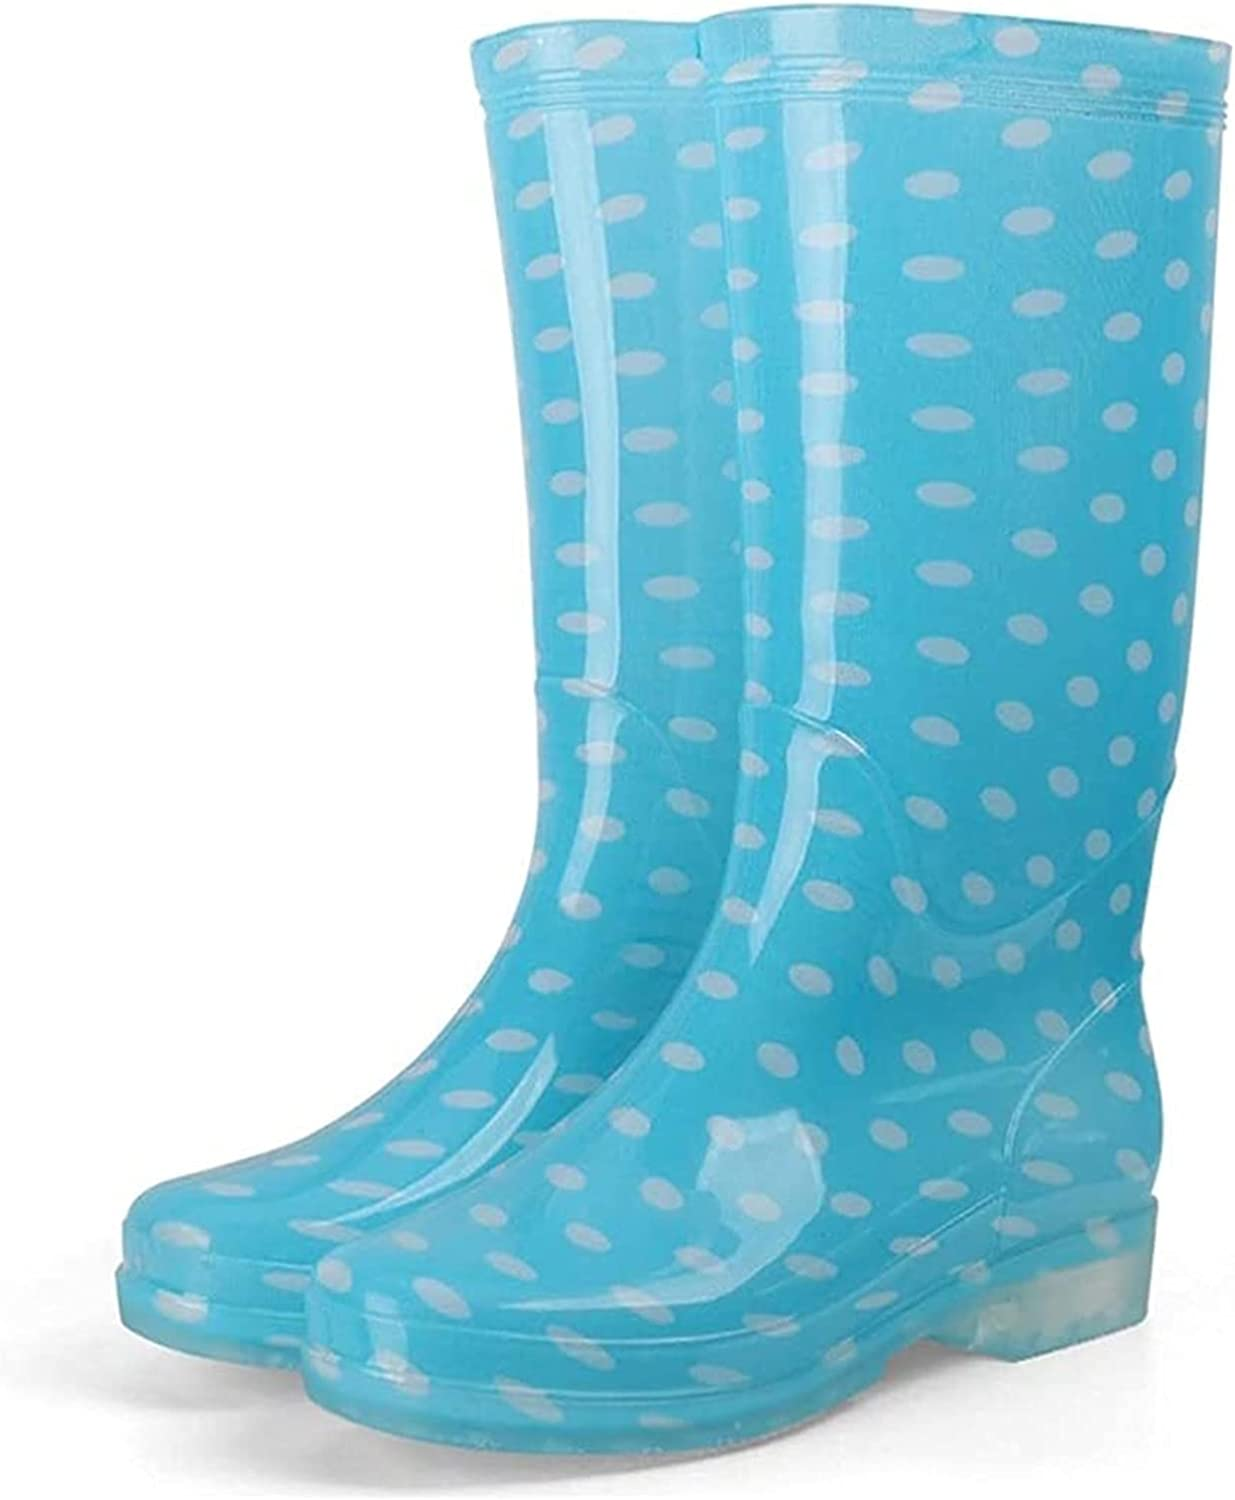 YUESFZ rain Boots Women's Choice Spring new work one after another Candy-Colored No Waterproof Rain